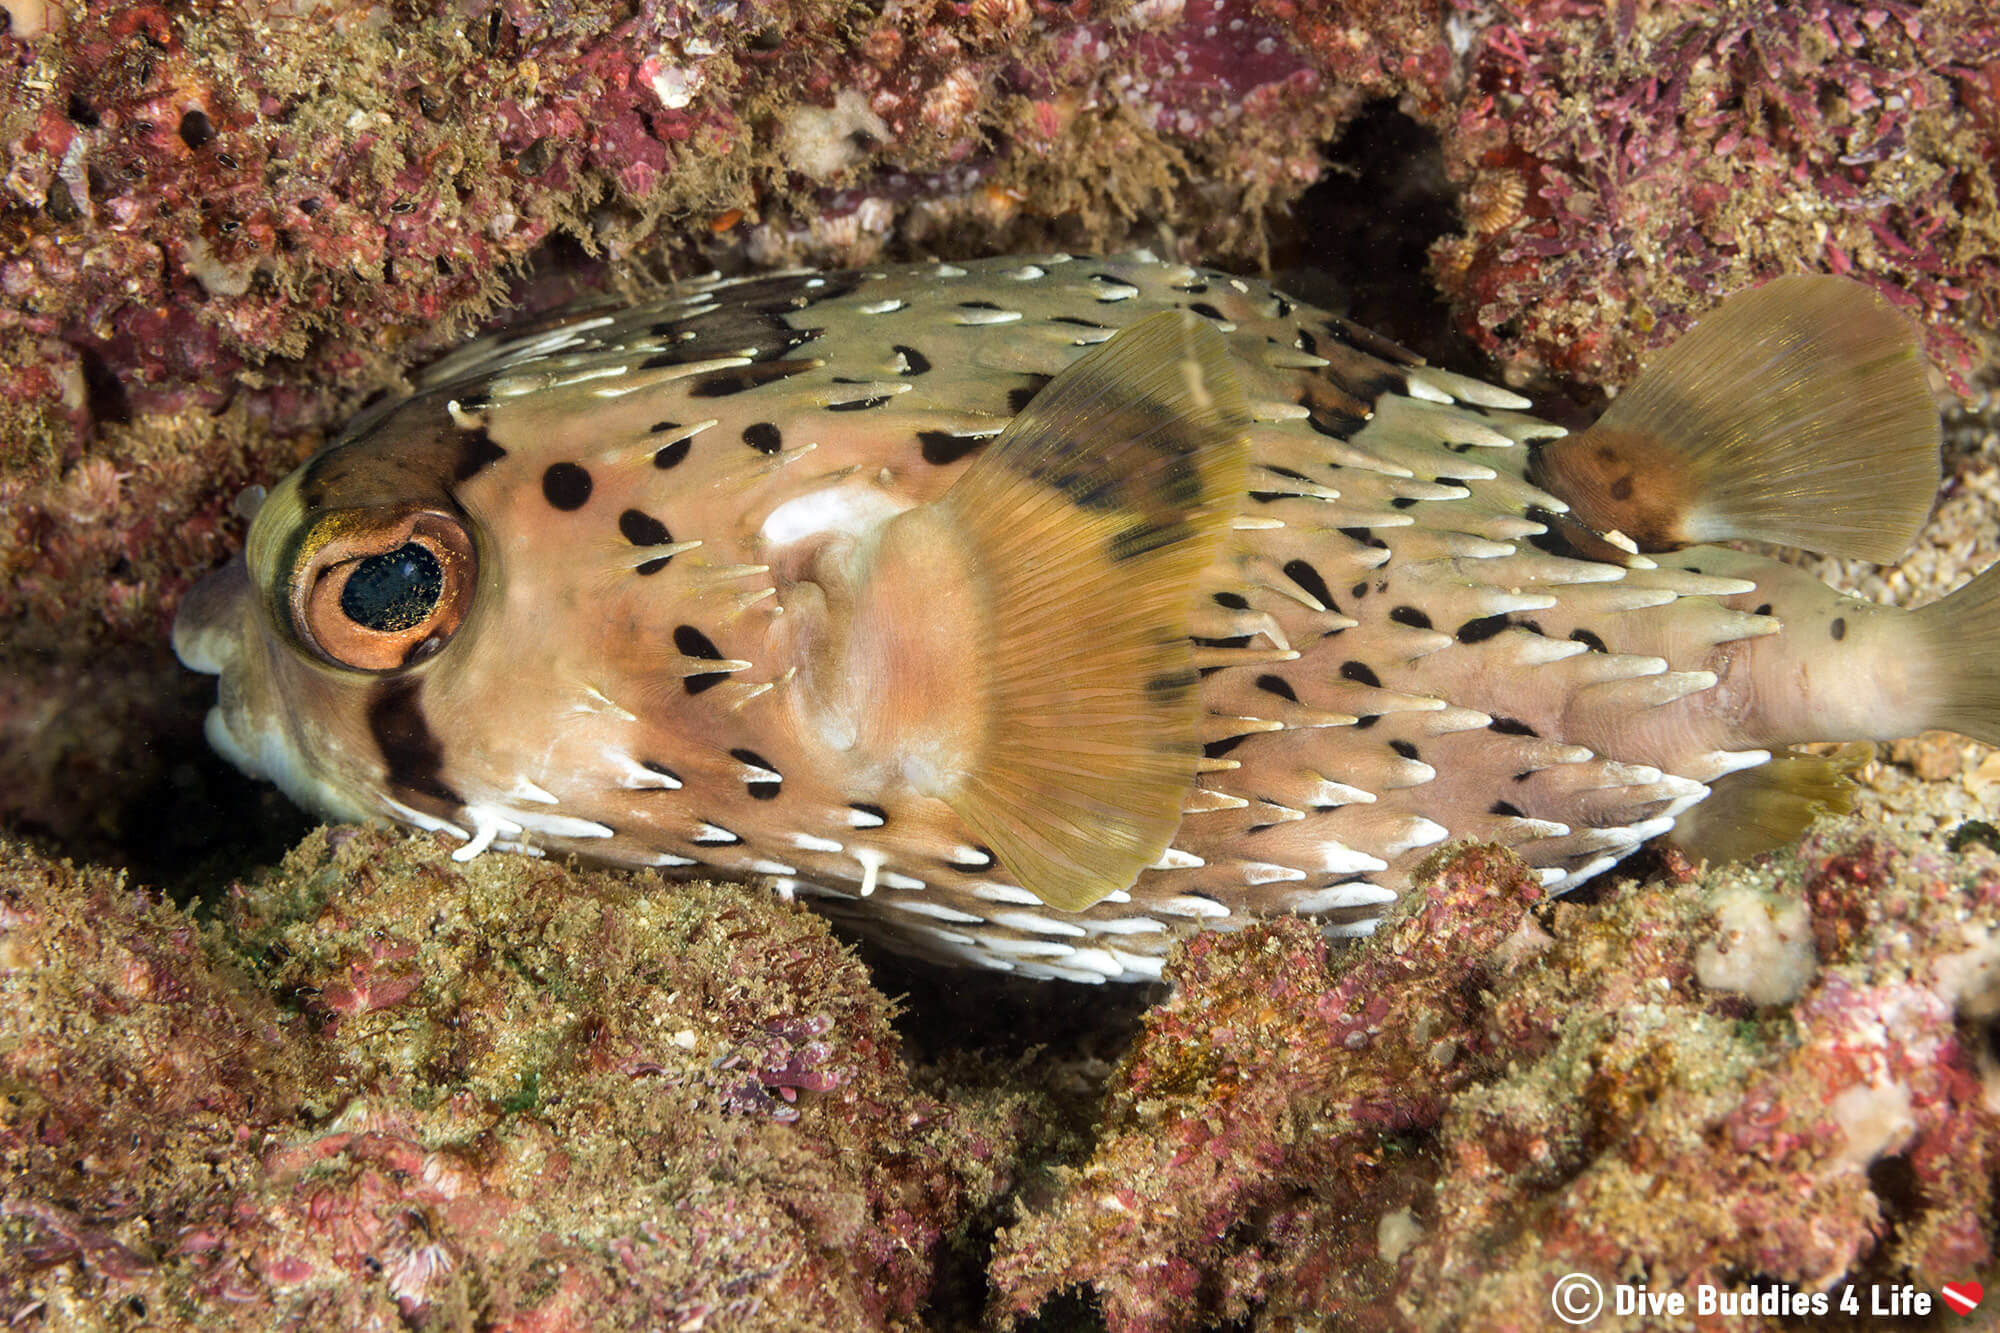 Porcupine Puffer Wedged Between Two Rocks At The Catalina Islands In Costa Rica, Central America